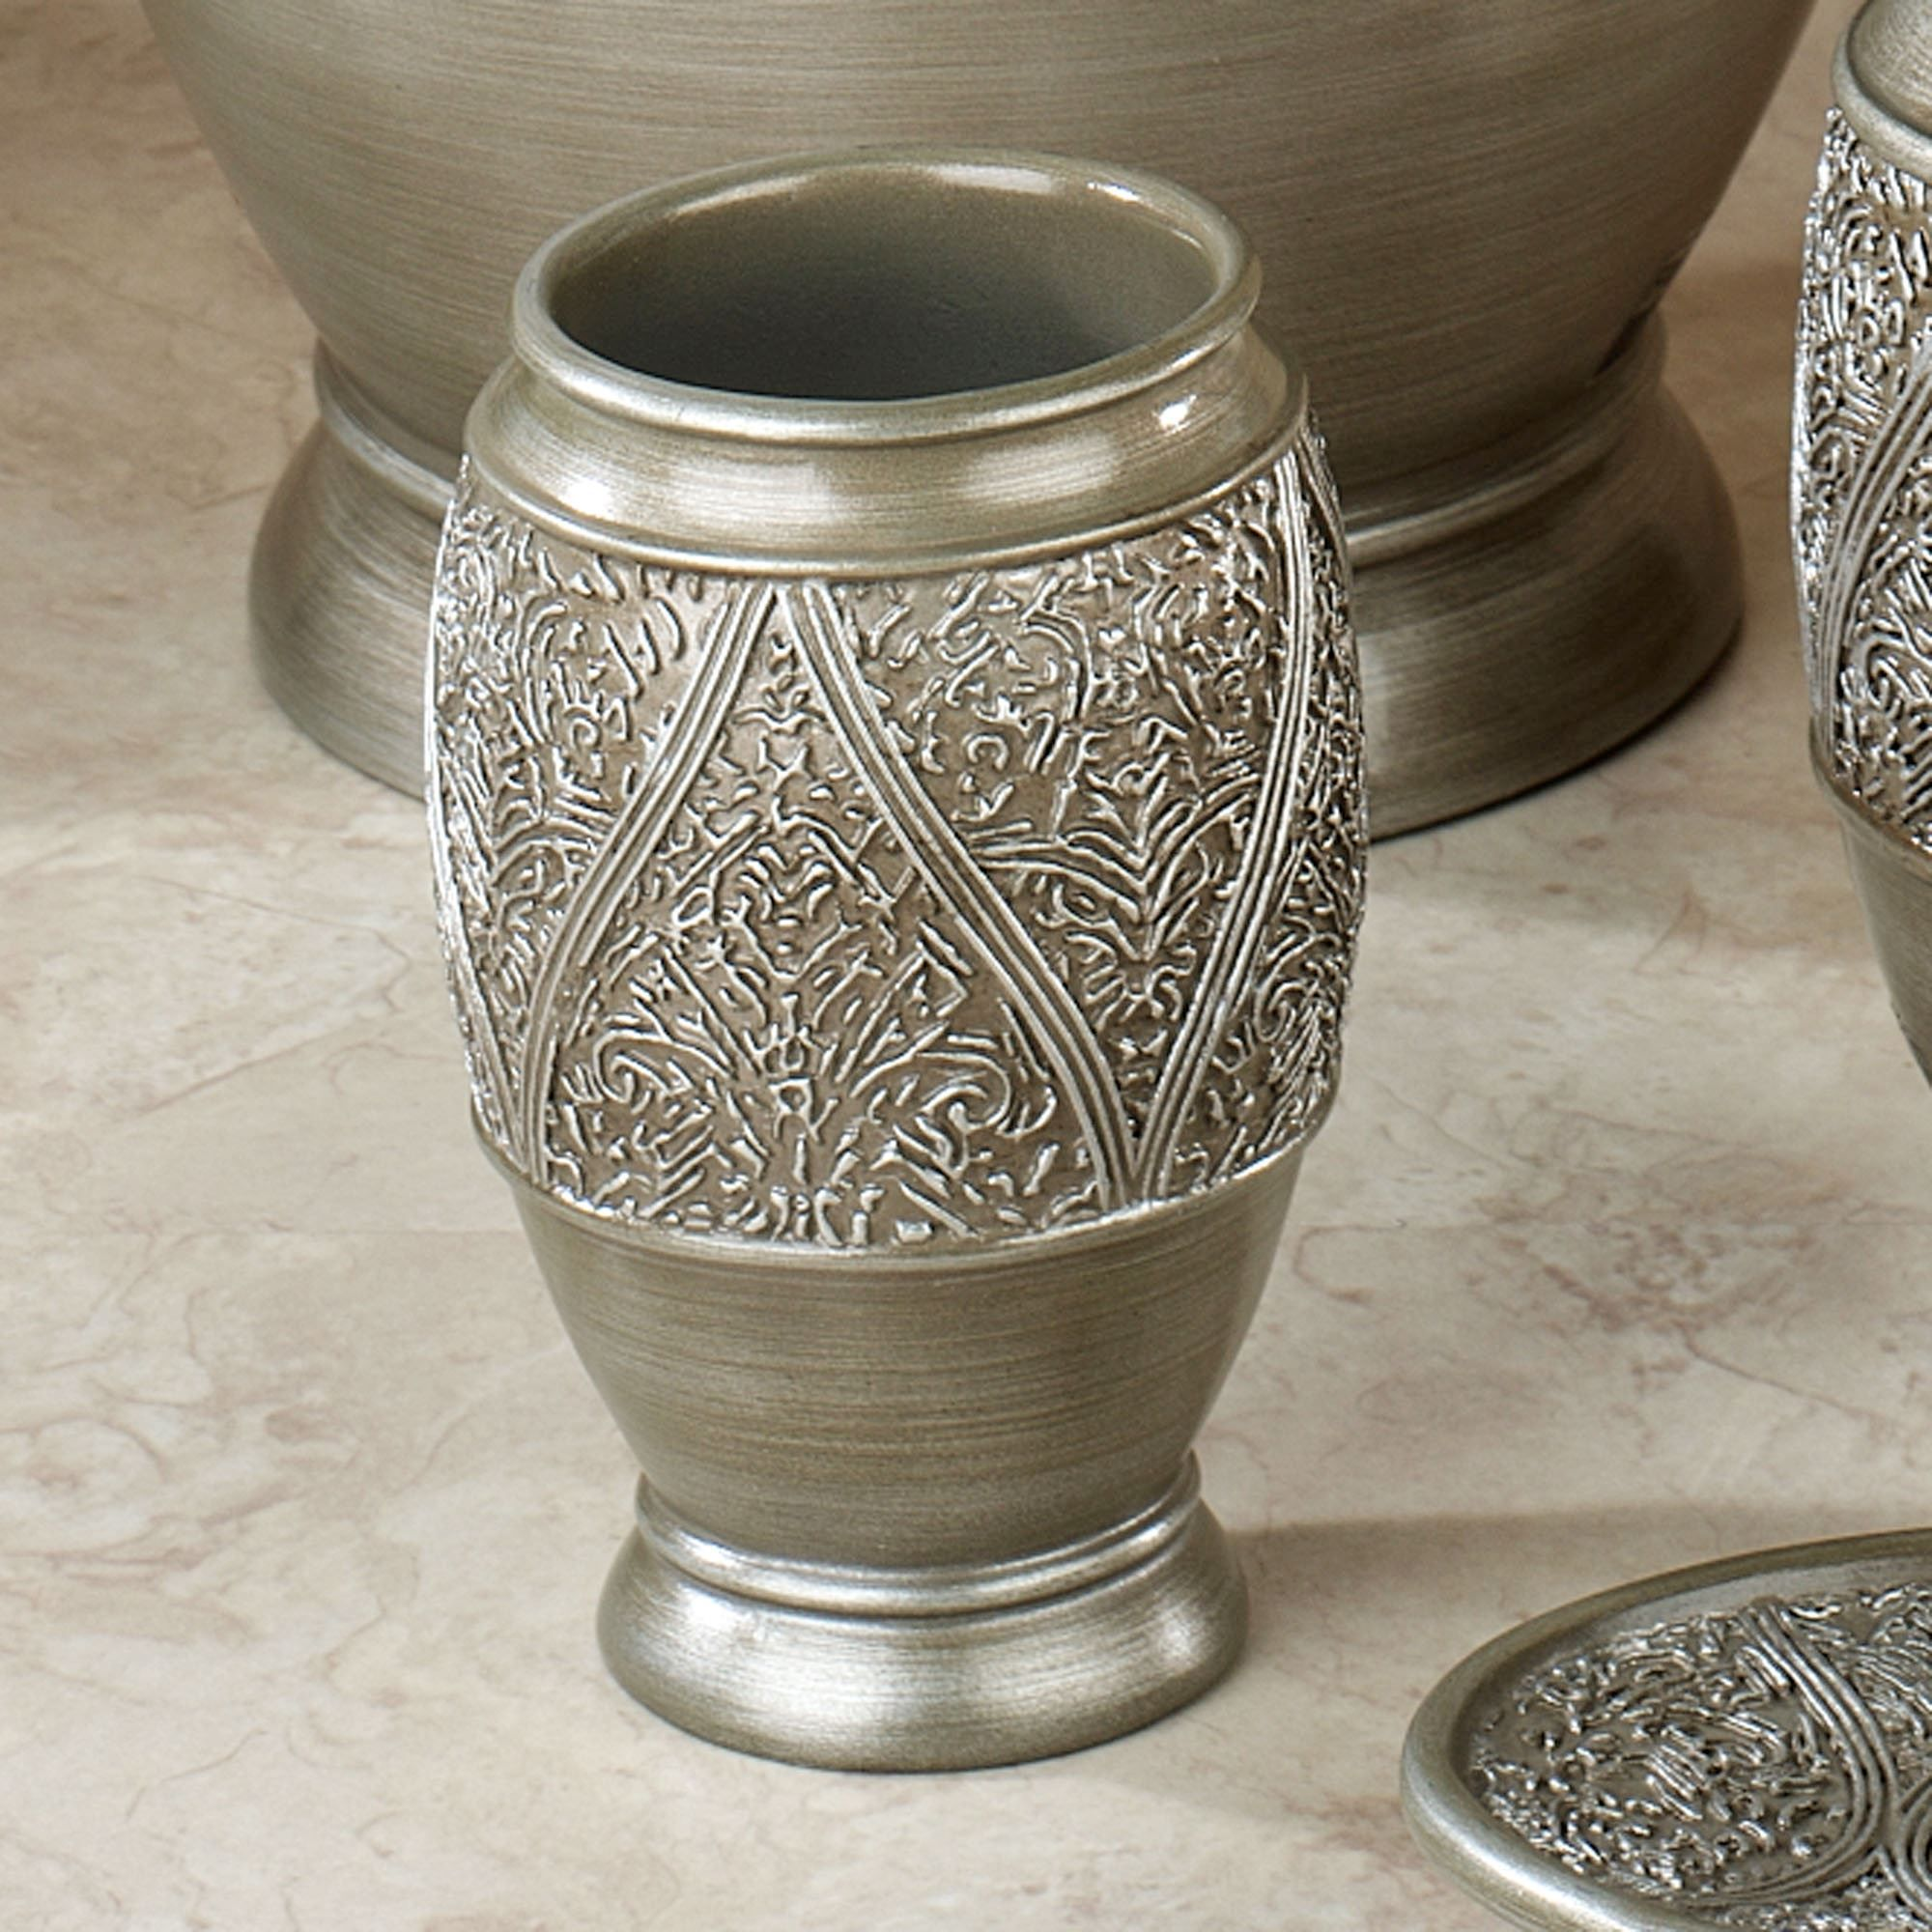 Moroccan bathroom accessories - Made Of Handpainted Resin The Casablanca Bath Accessories Feature An Etched Silver Banded Border Of Moroccan Designs